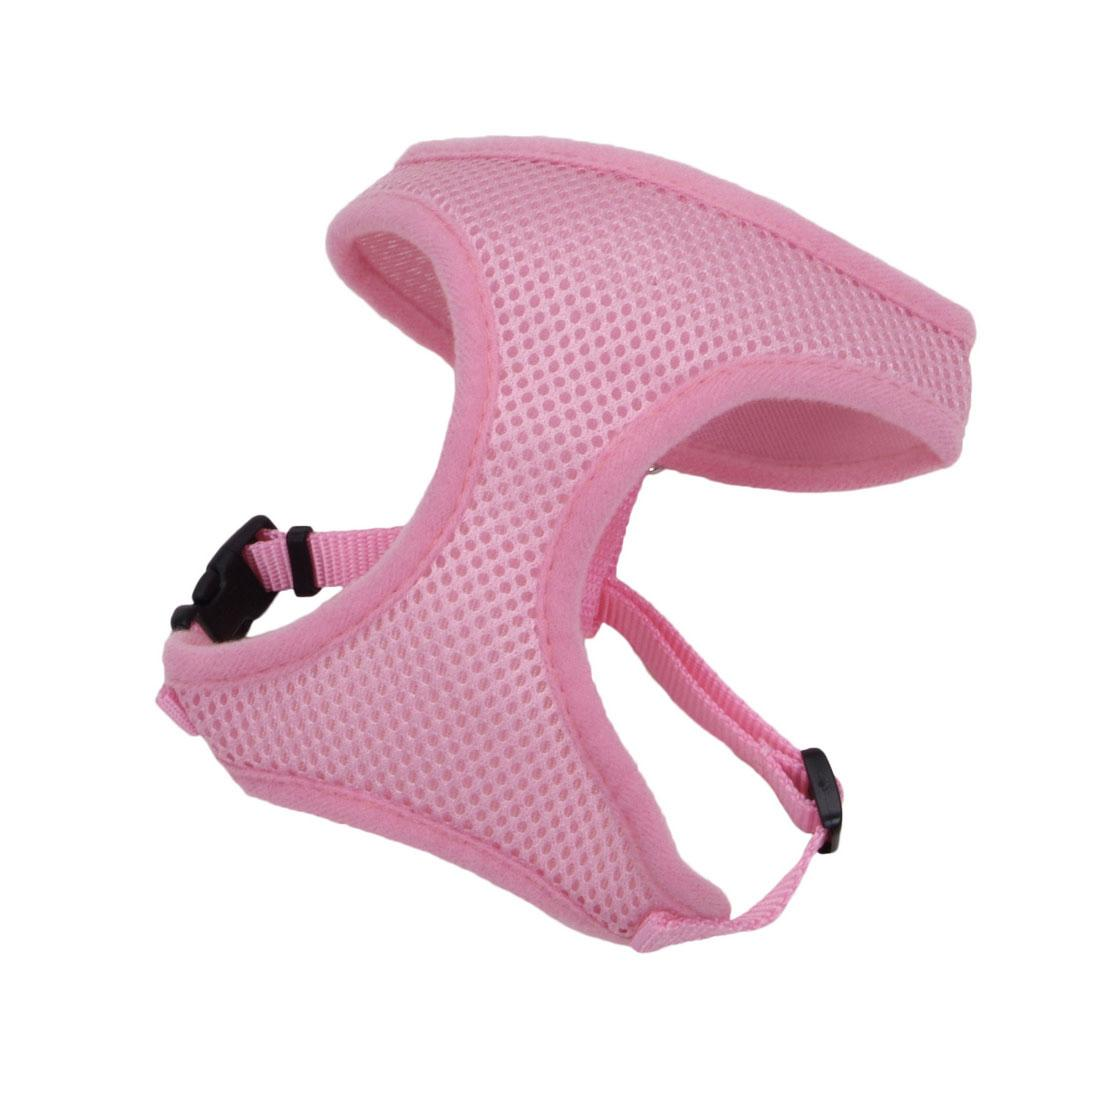 Coastal Comfort Soft Adjustable Dog Harness, Pink Bright, 5/8-in x 16-19-in